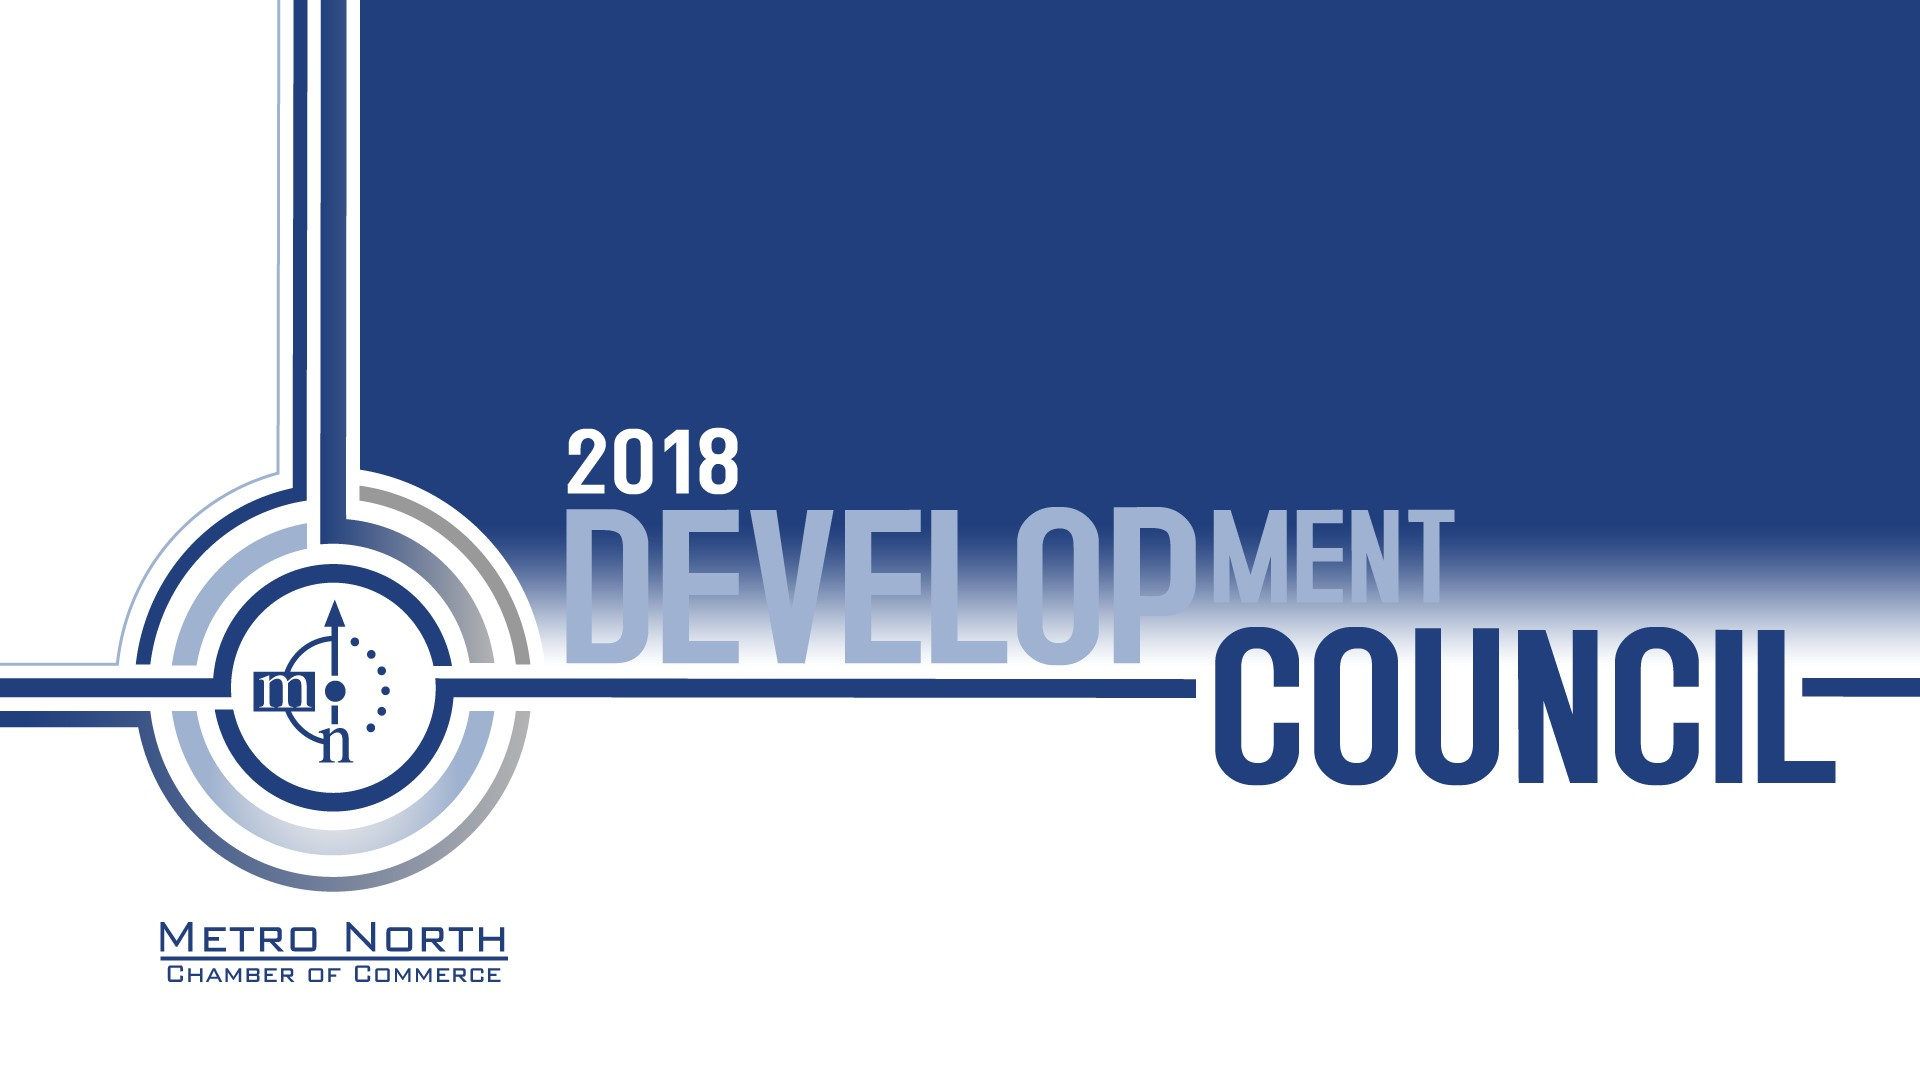 Development Council